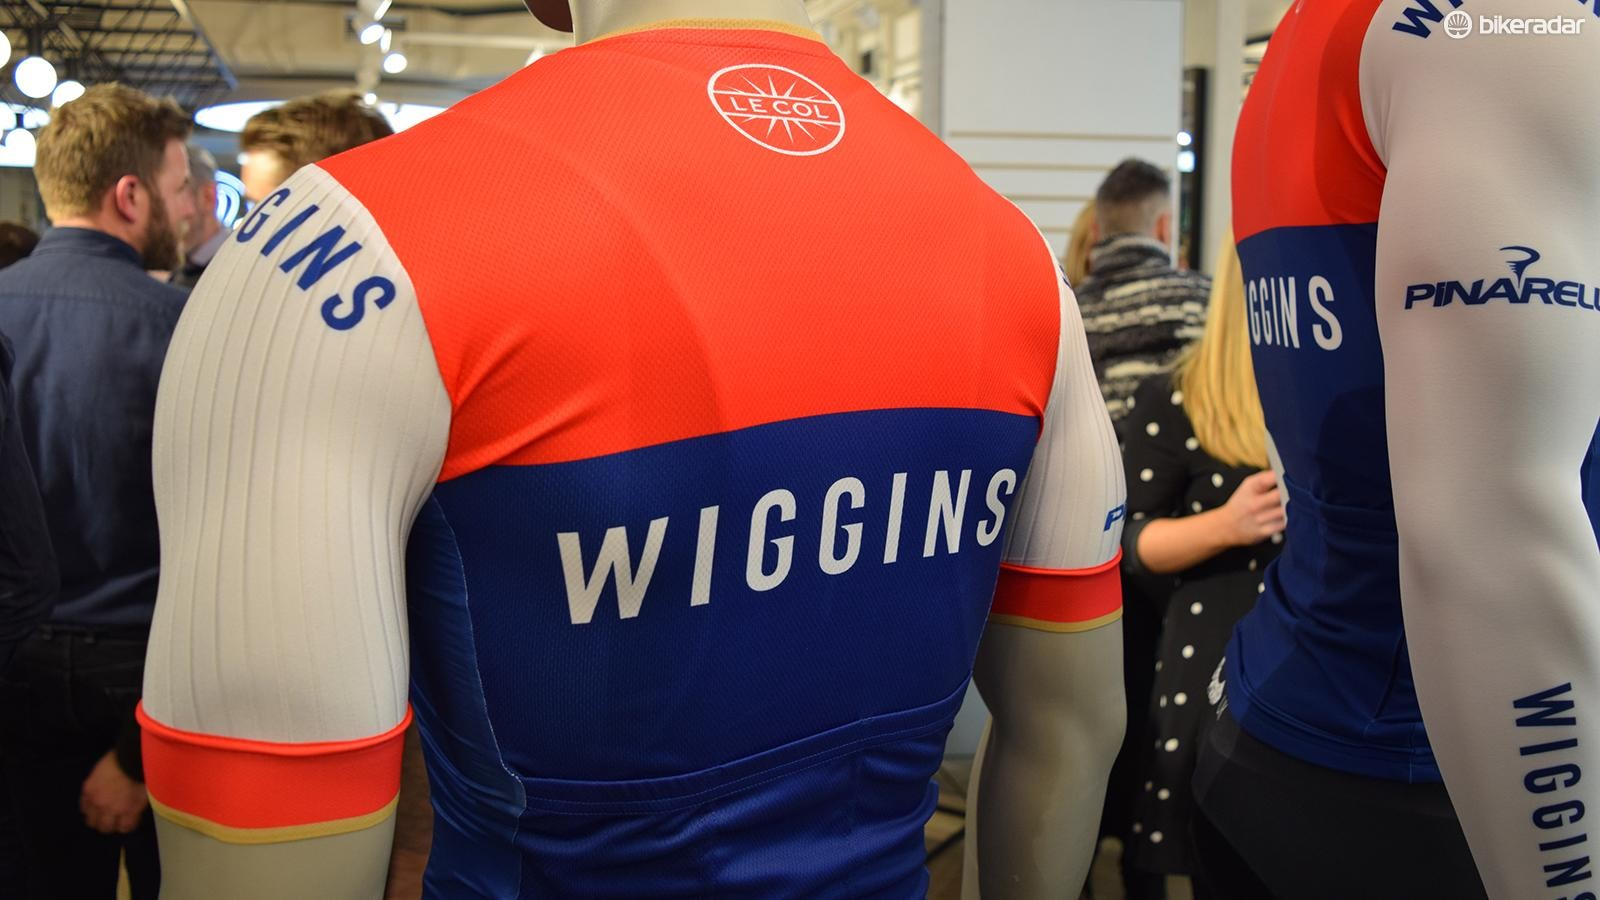 Fewer sponsors keep a clean and uncluttered design on the jersey